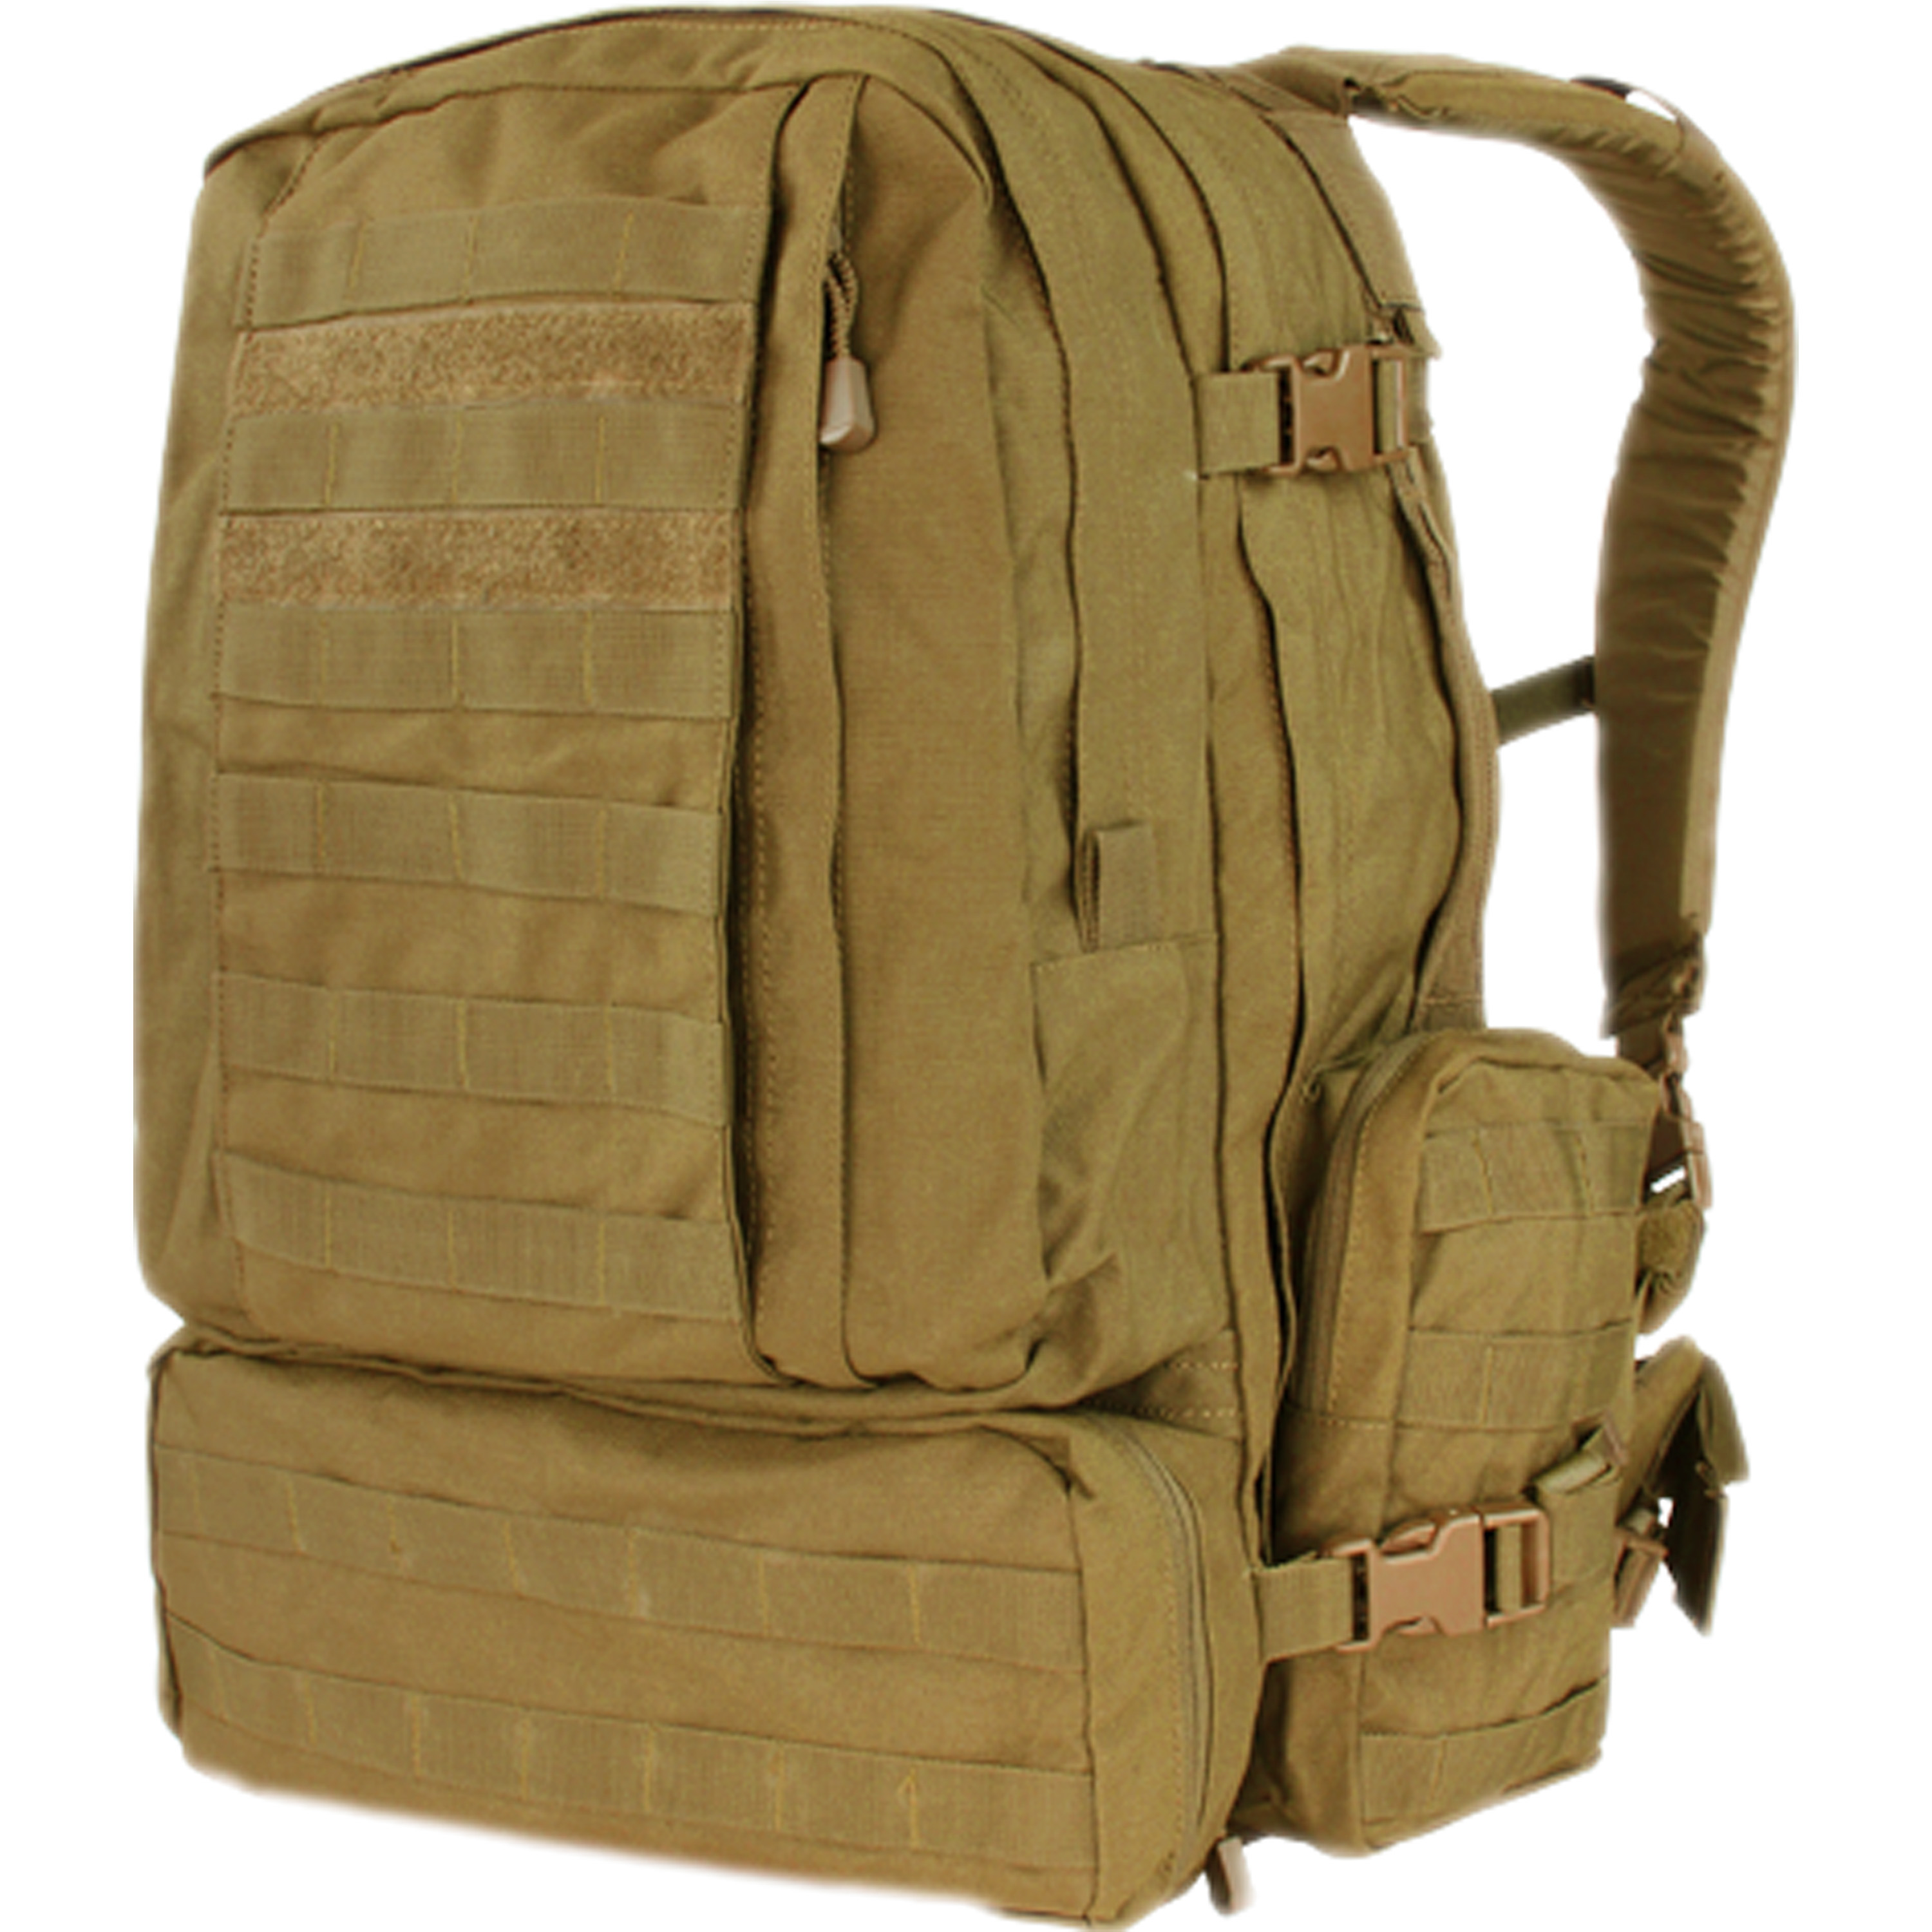 Condor Backpack 3-Day Assault Pack coyote brown